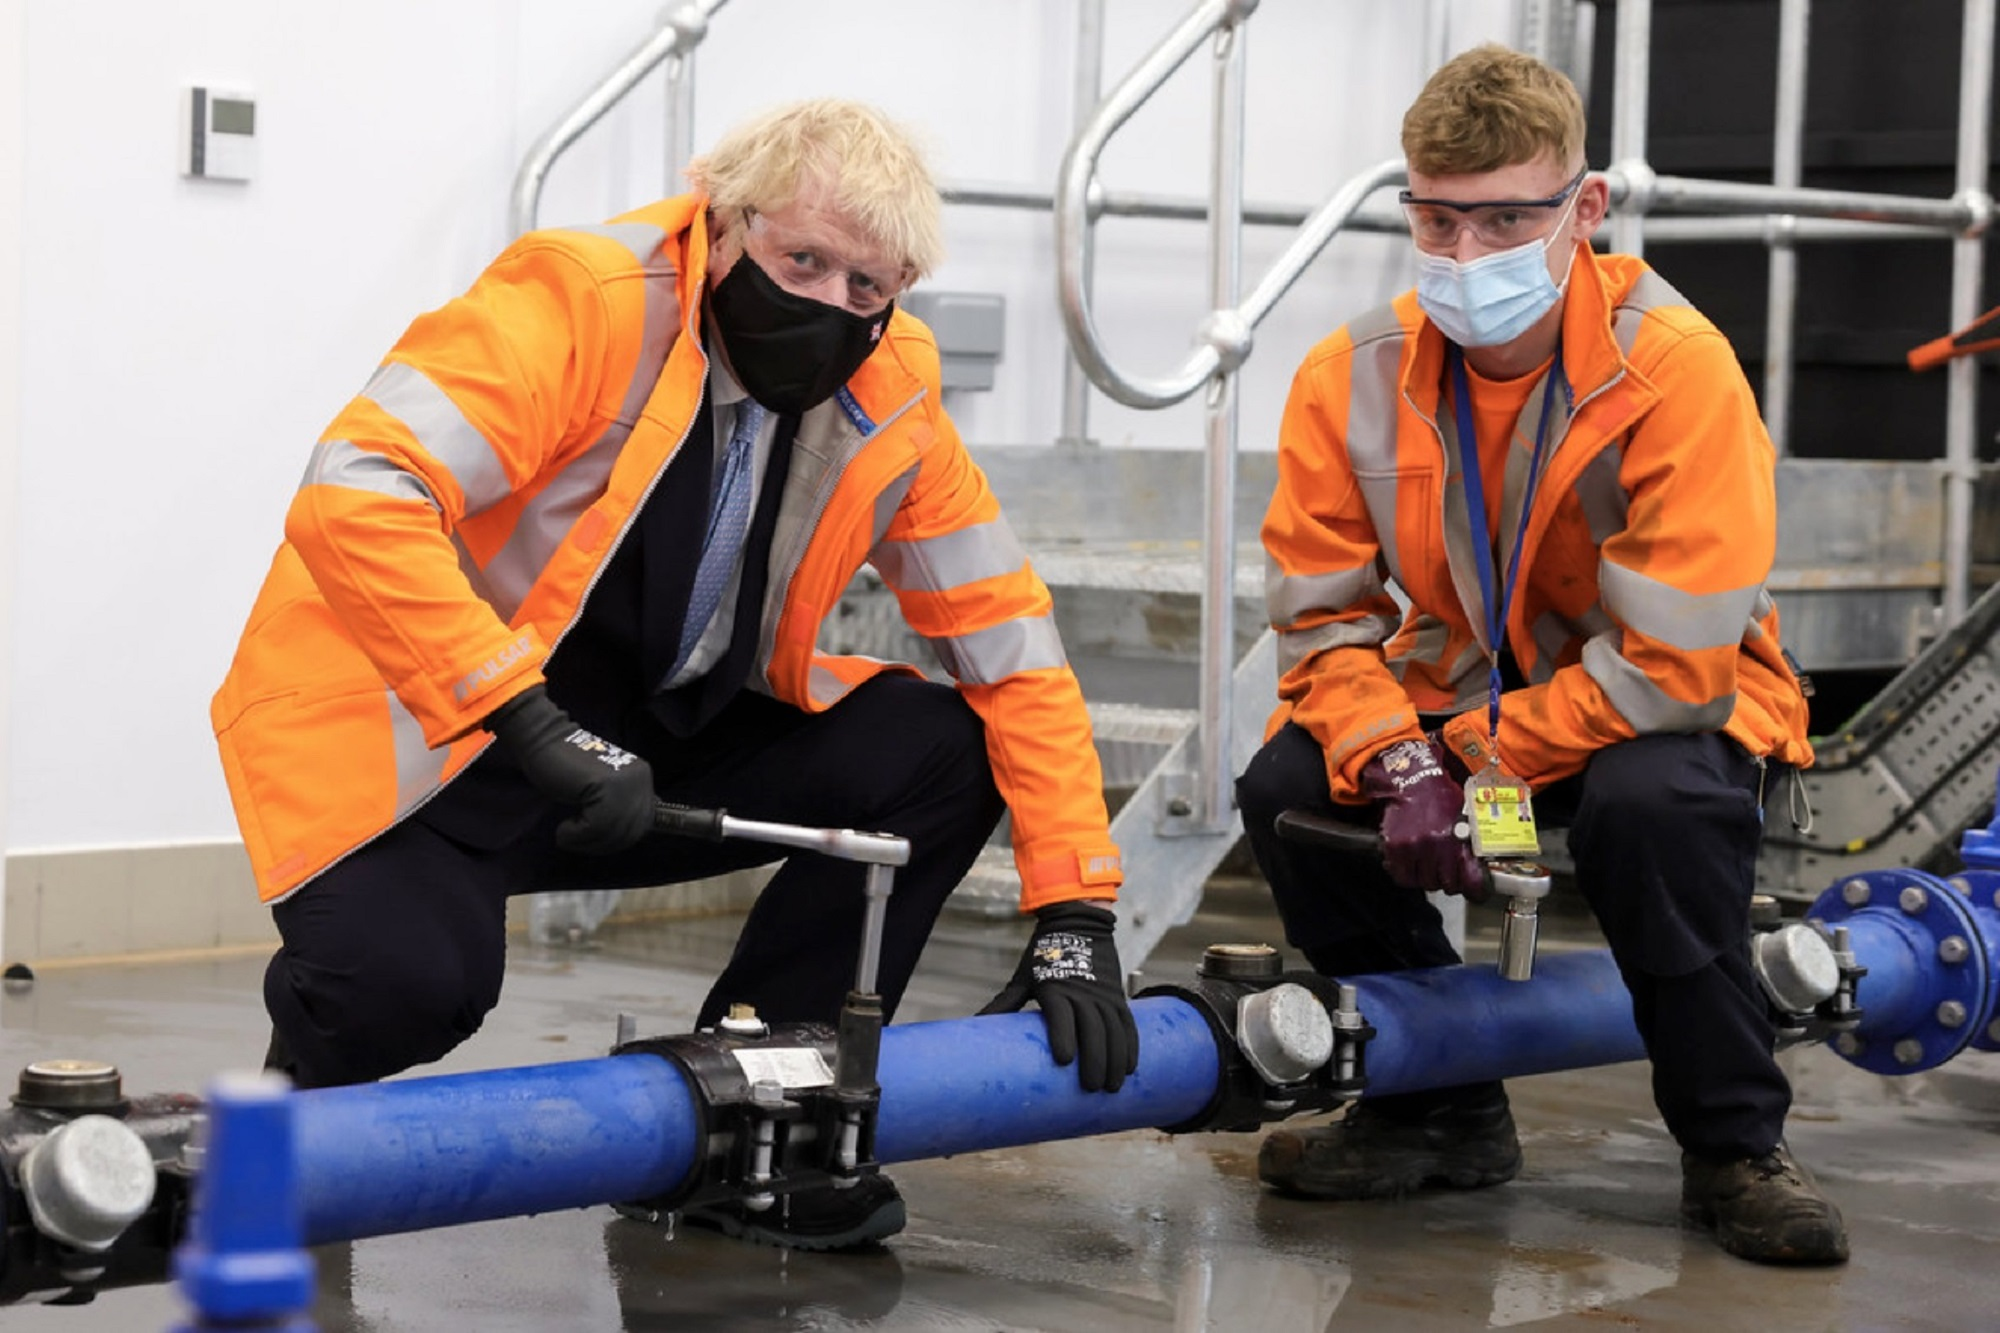 Prime Minister Boris Johnson met apprentices and Kickstart trainees during a tour of the facilities built by modular construction specialist Integra Buildings.